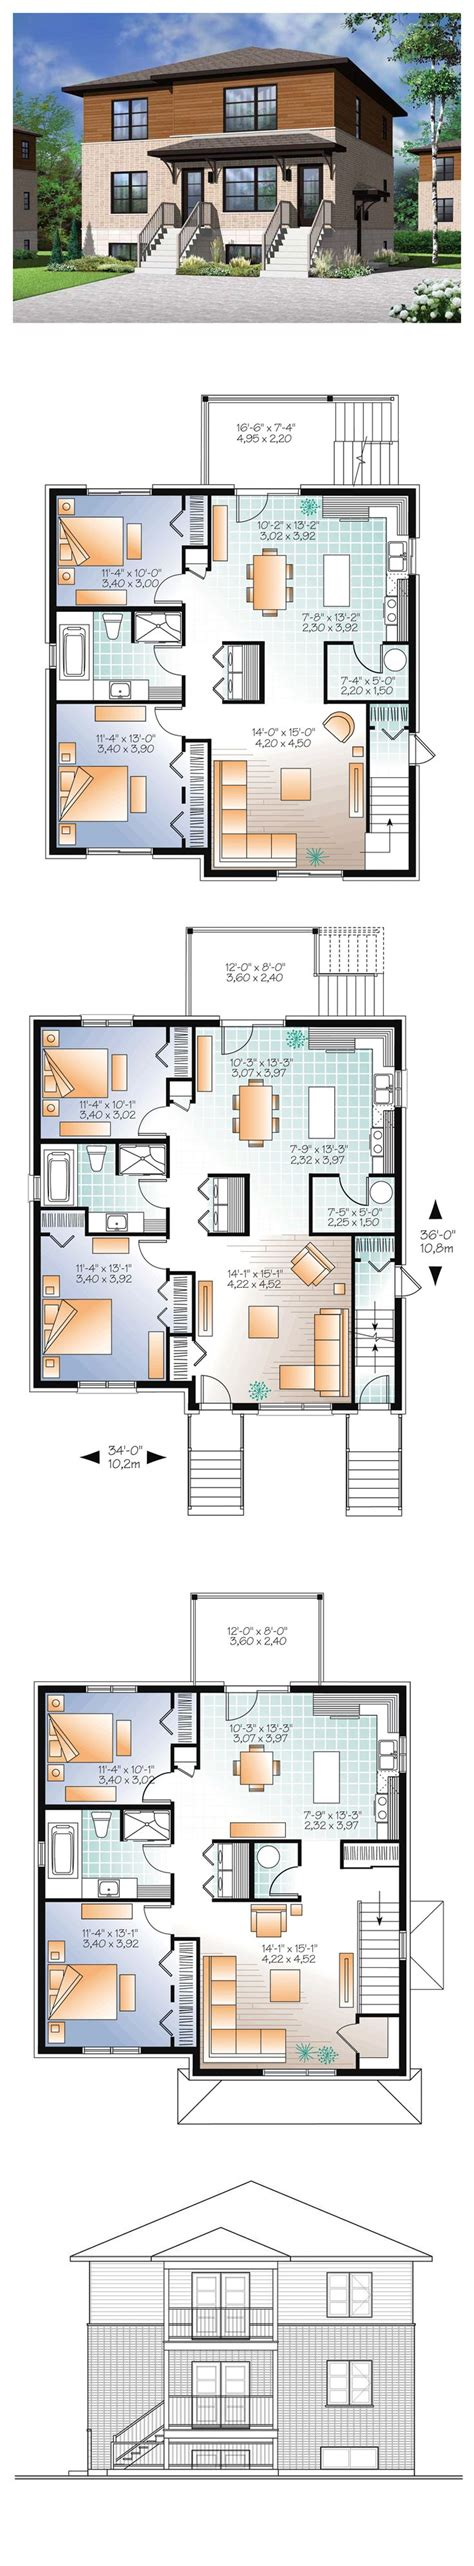 multi family apartment plans 125 best images about duplex apartment plans on